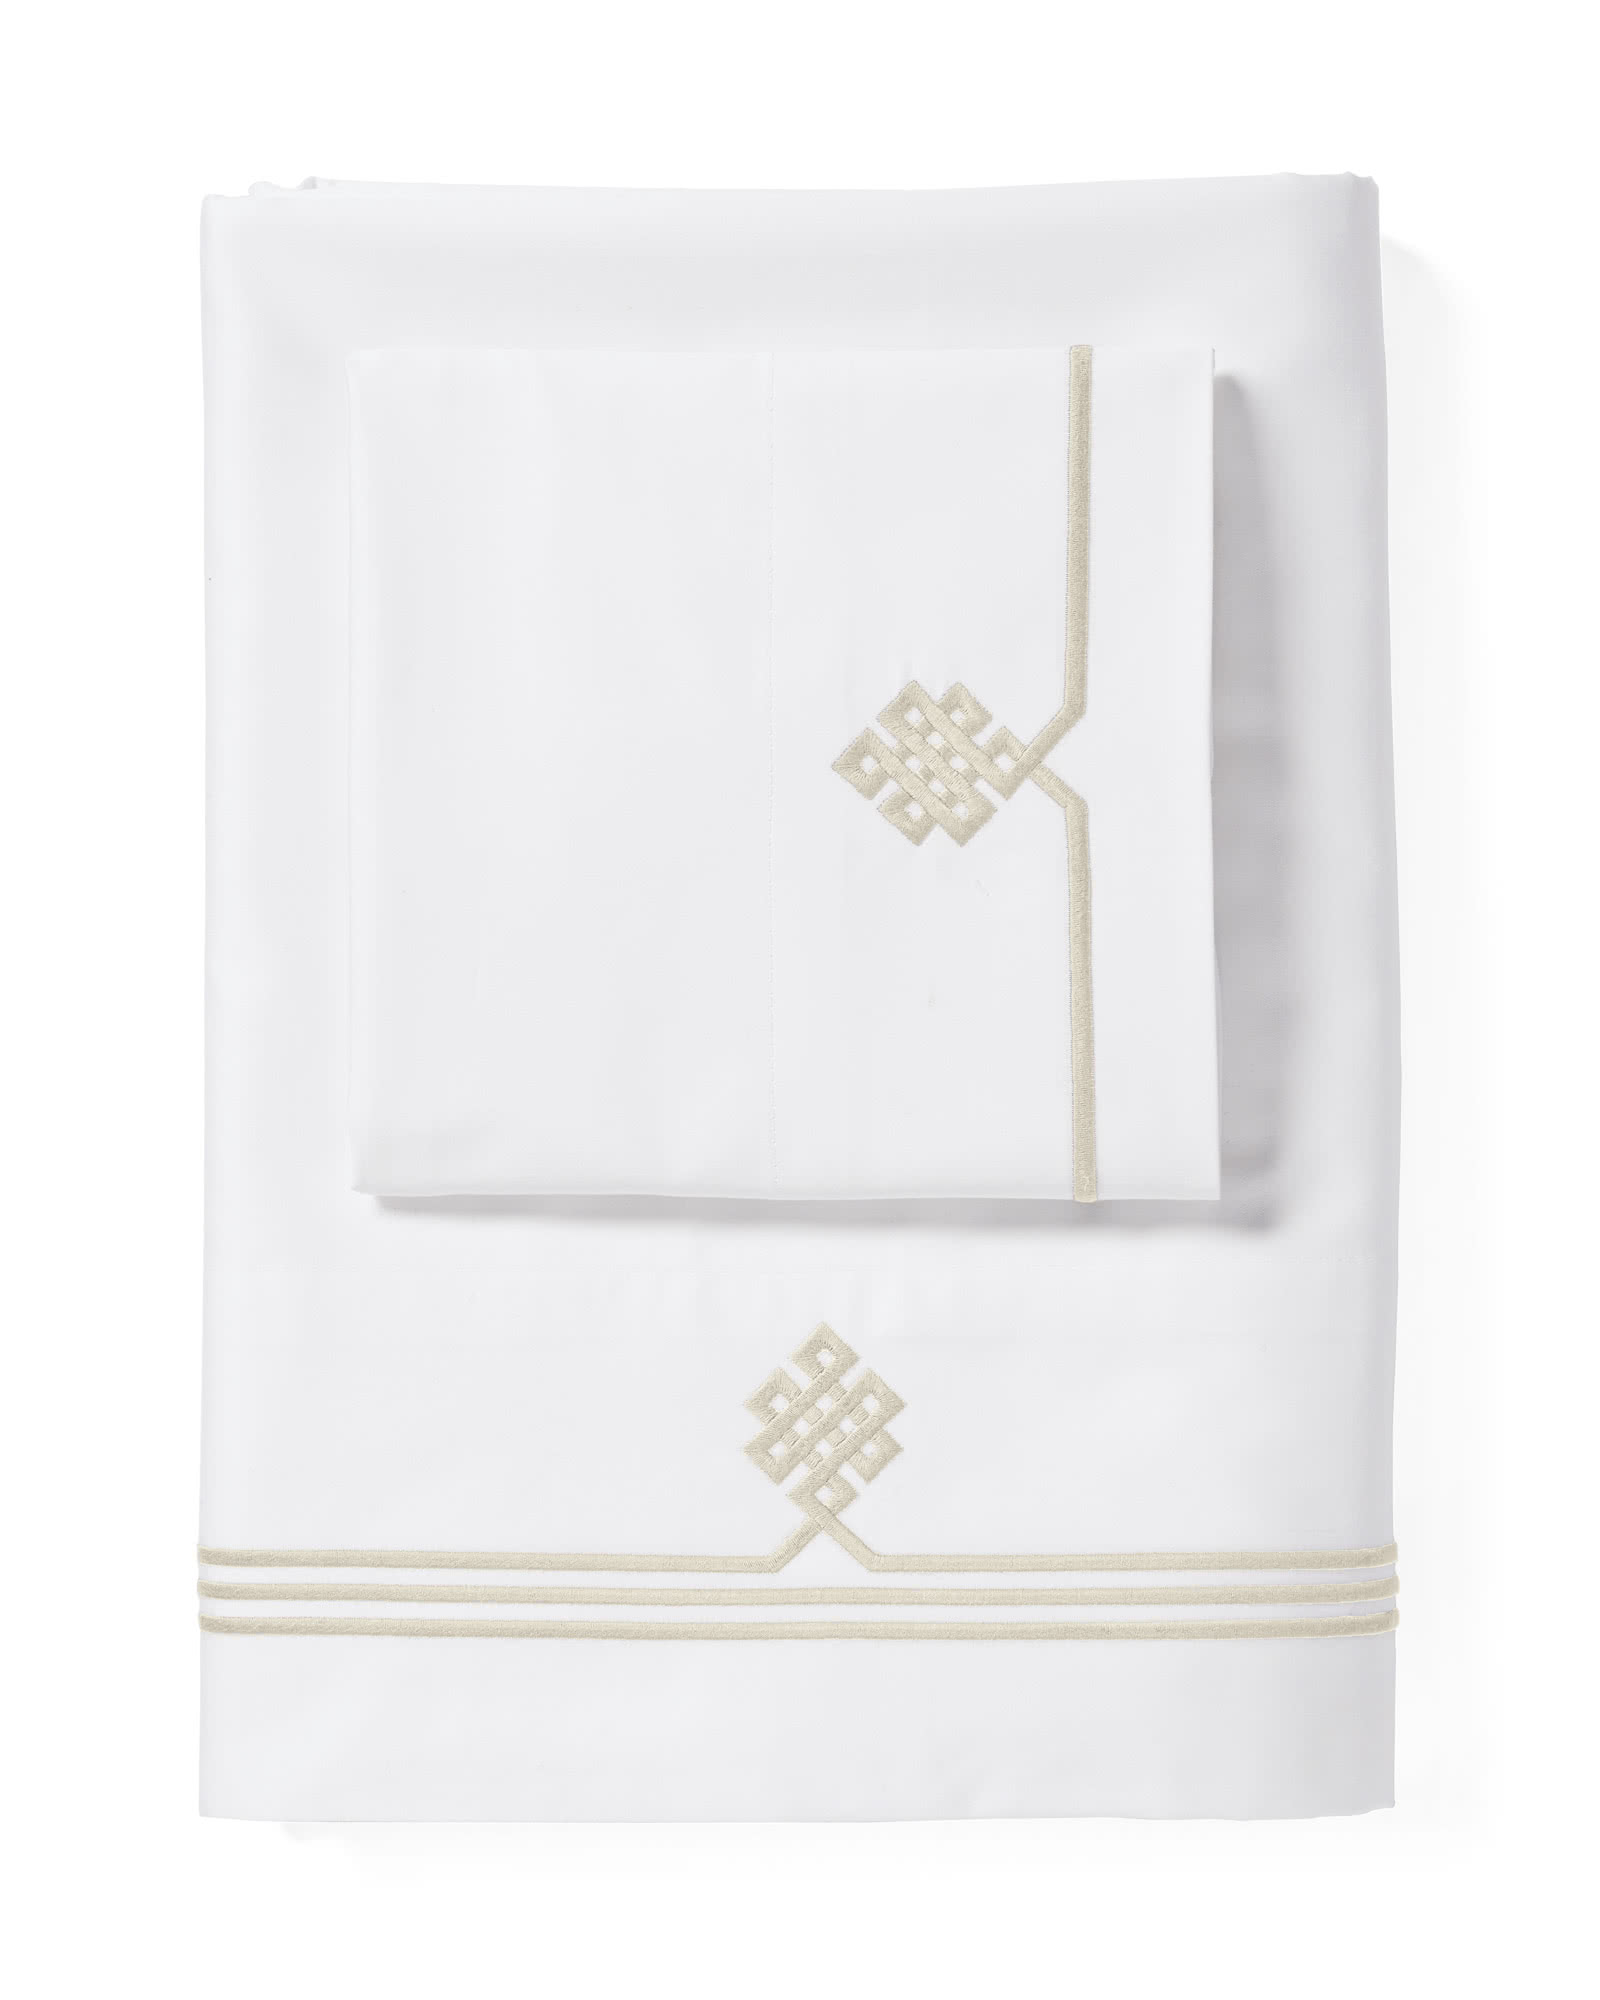 Gobi Embroidered Sheet Set, Sand